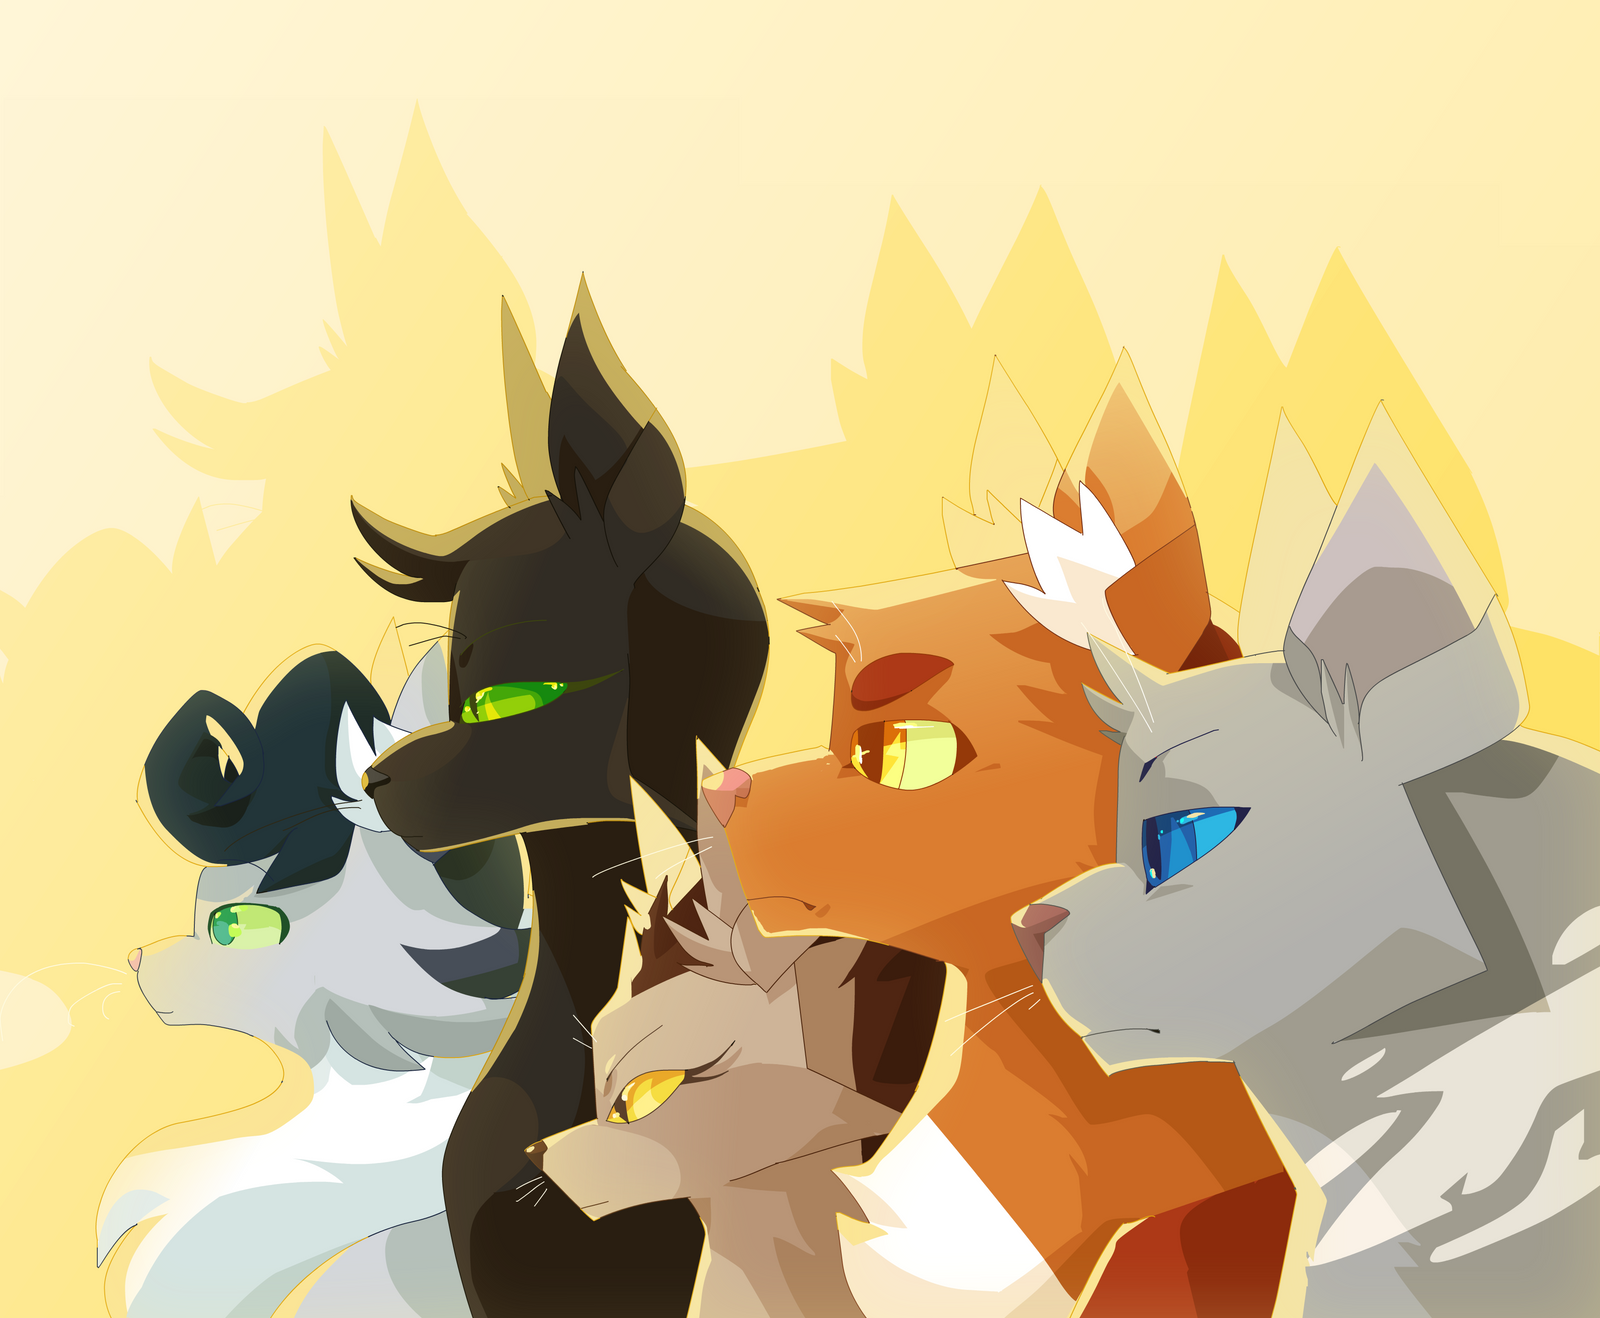 Founders by nifty senpai on deviantart for Nifty family